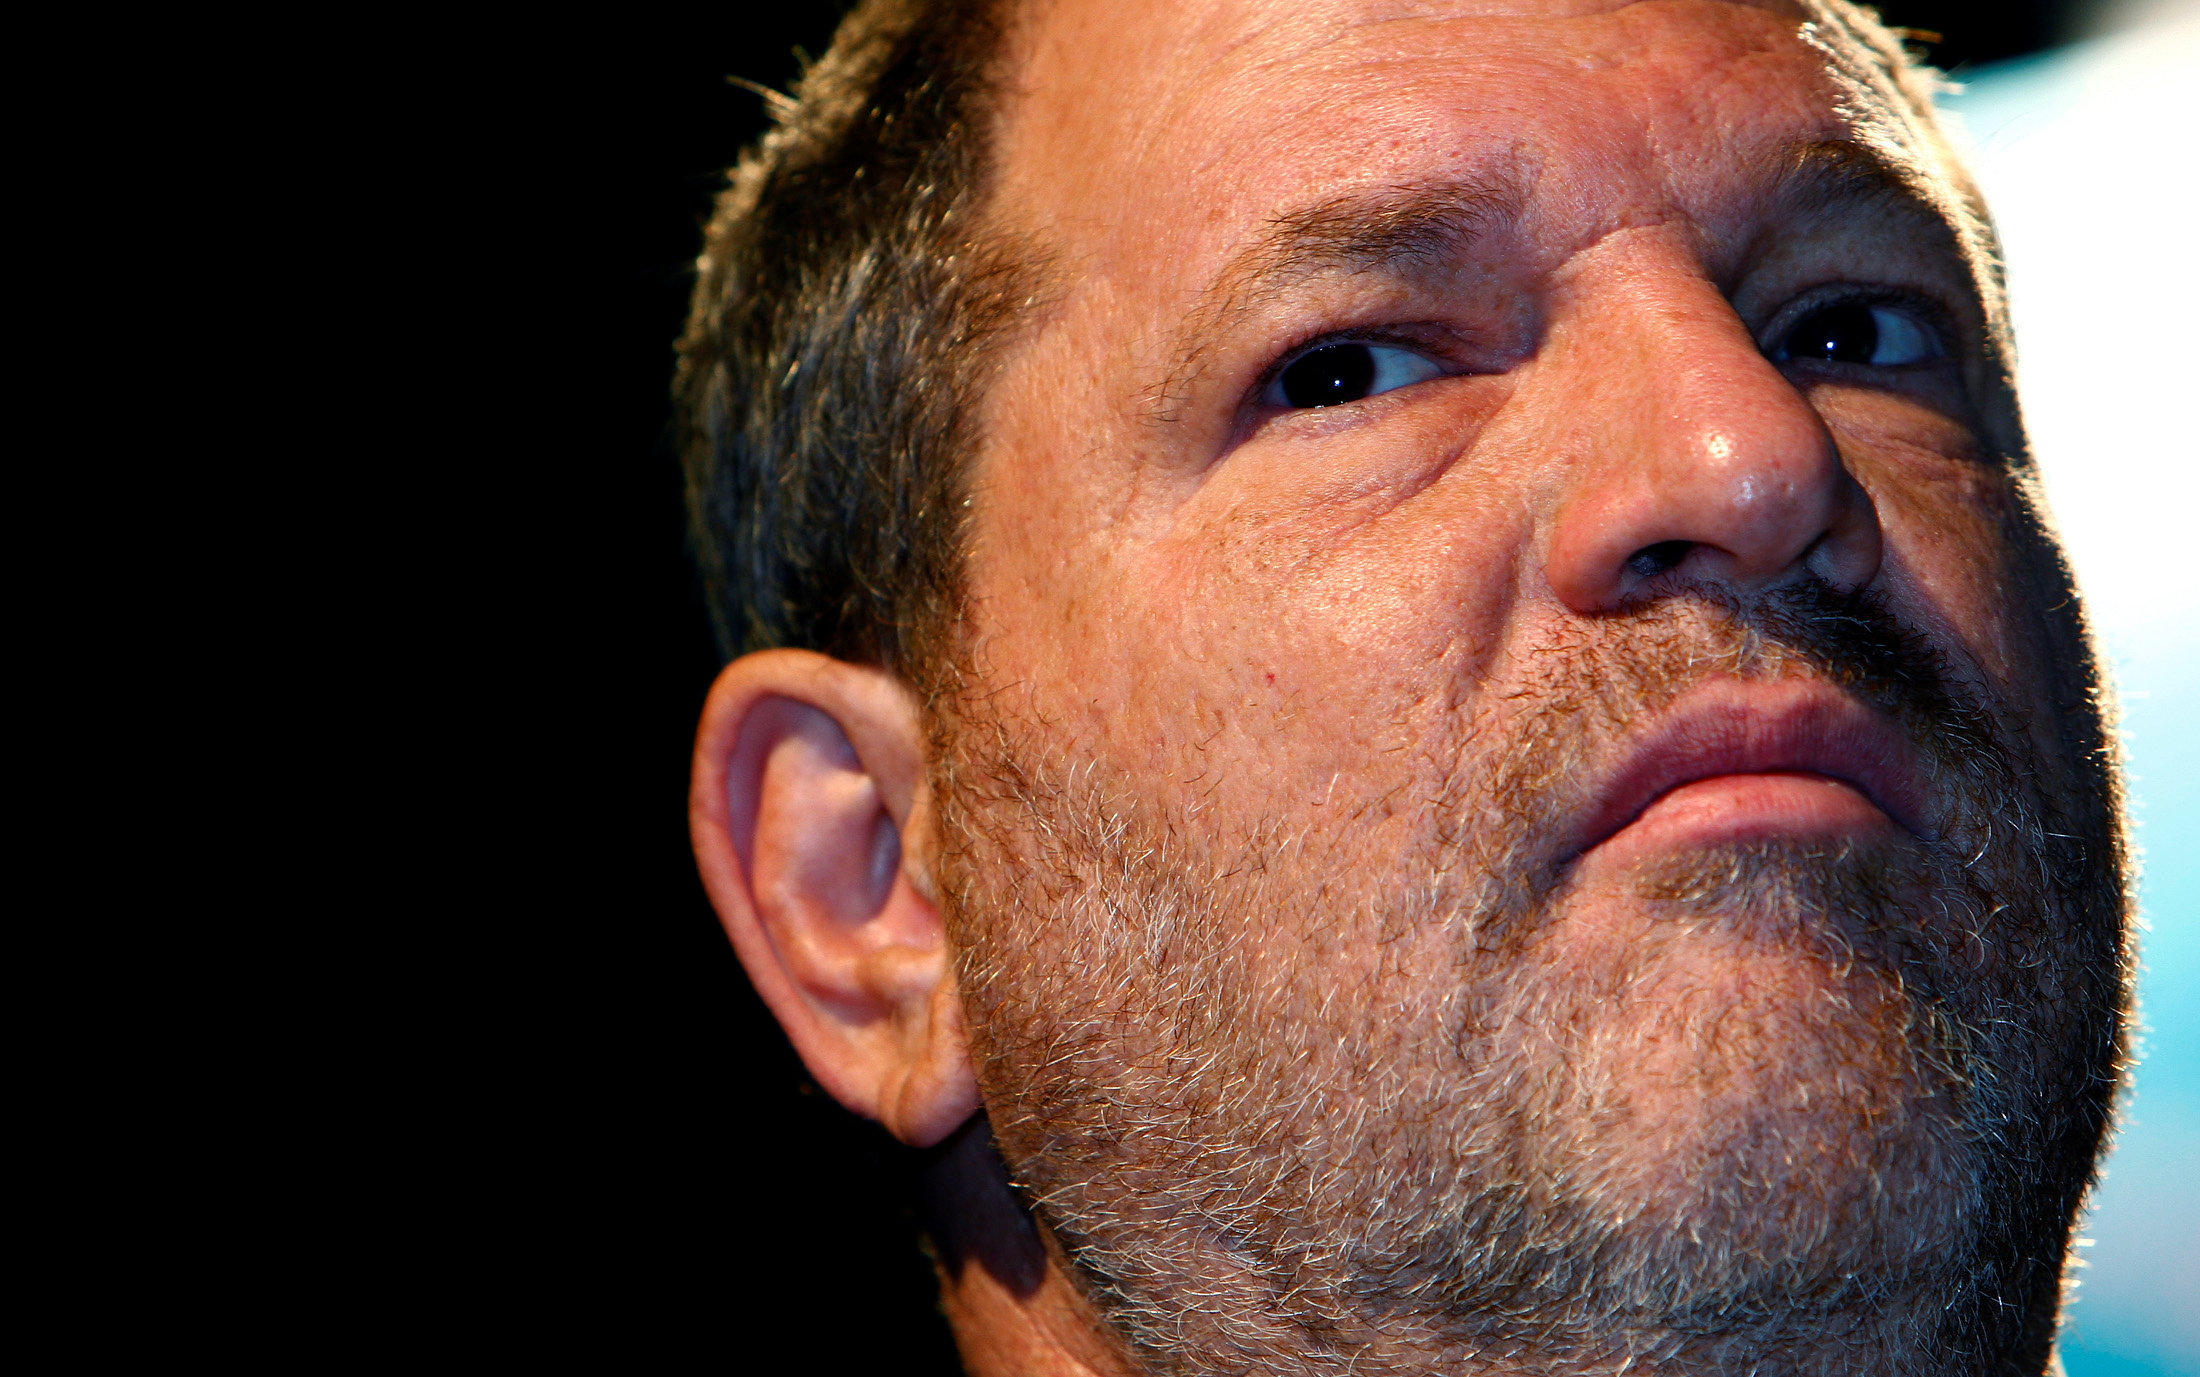 FILE PHOTO: Weinstein, Co-Chairman of the Weinstein Company, attends the inaugural Middle East International Film Festival in Abu Dhabi